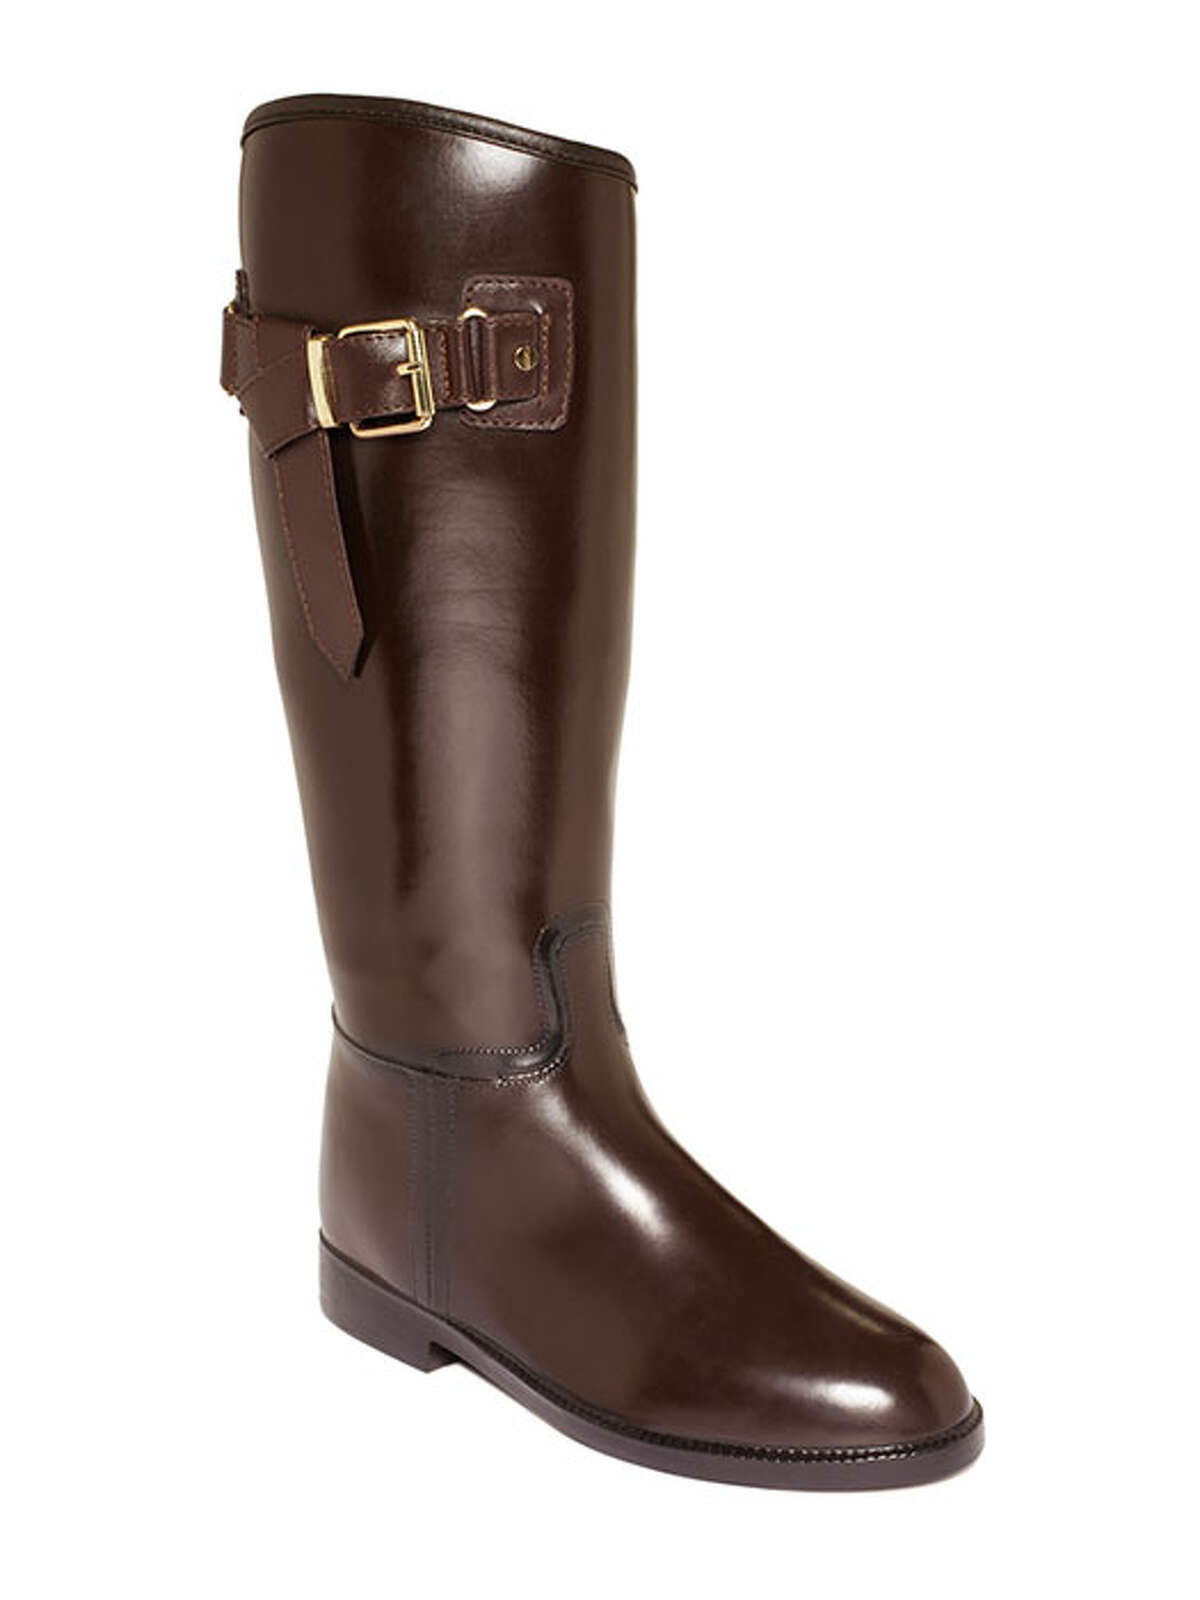 Slip these weatherproof riding boots over leggings or jeans to prevent spring showers from cramping your style. Bootsi Tootsi Shoes, Buckle Riding Rain Boots, $90, Macy's.More beauty and fashion at Redbookmag.com.